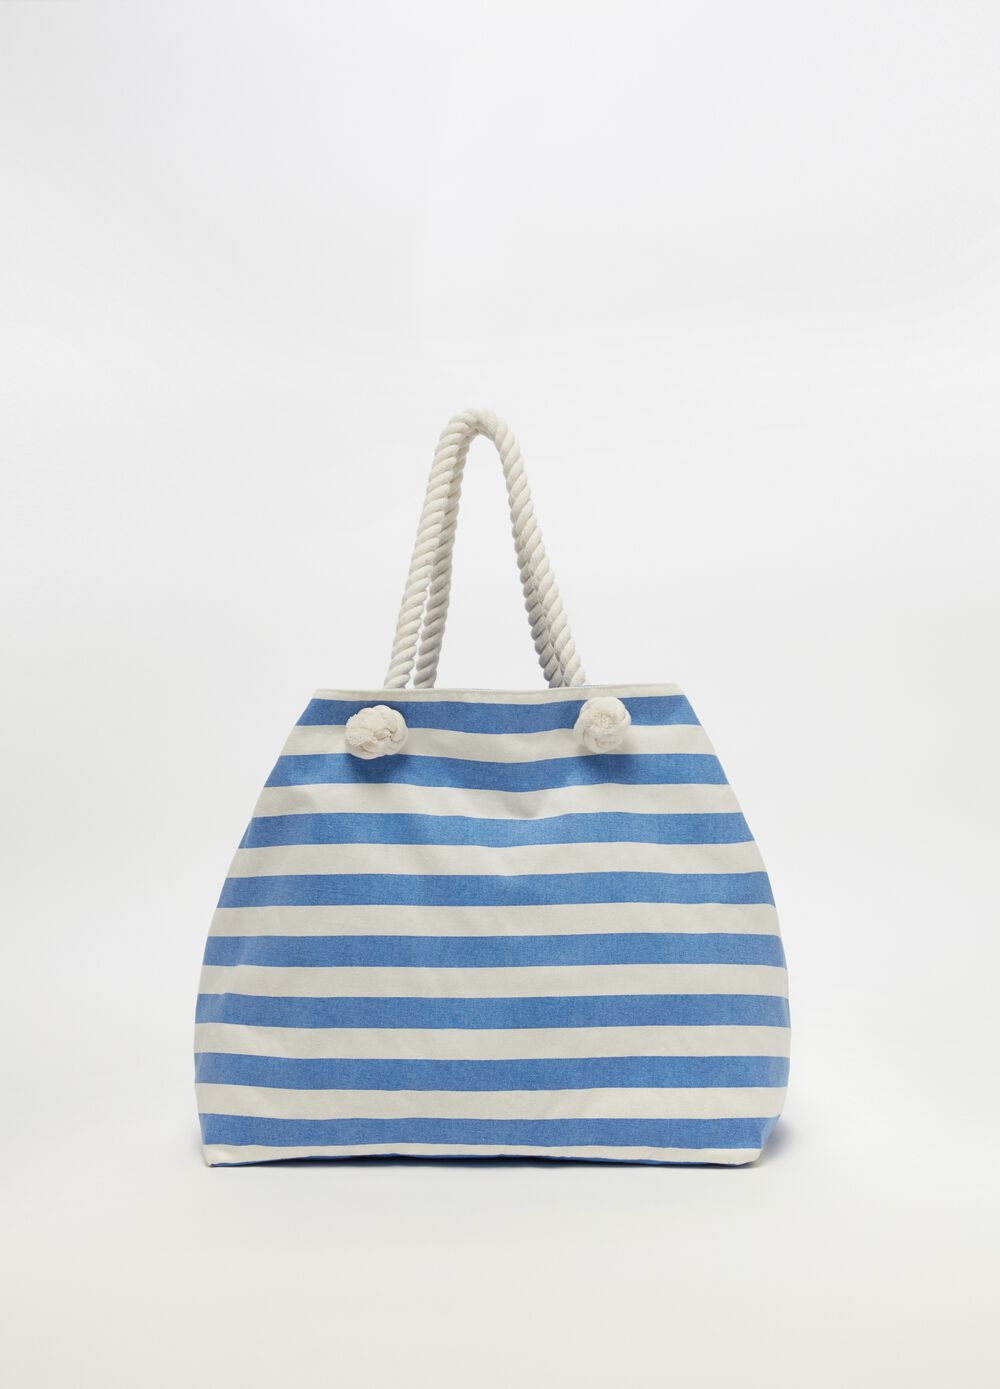 Beach bag with striped patterned and pocket